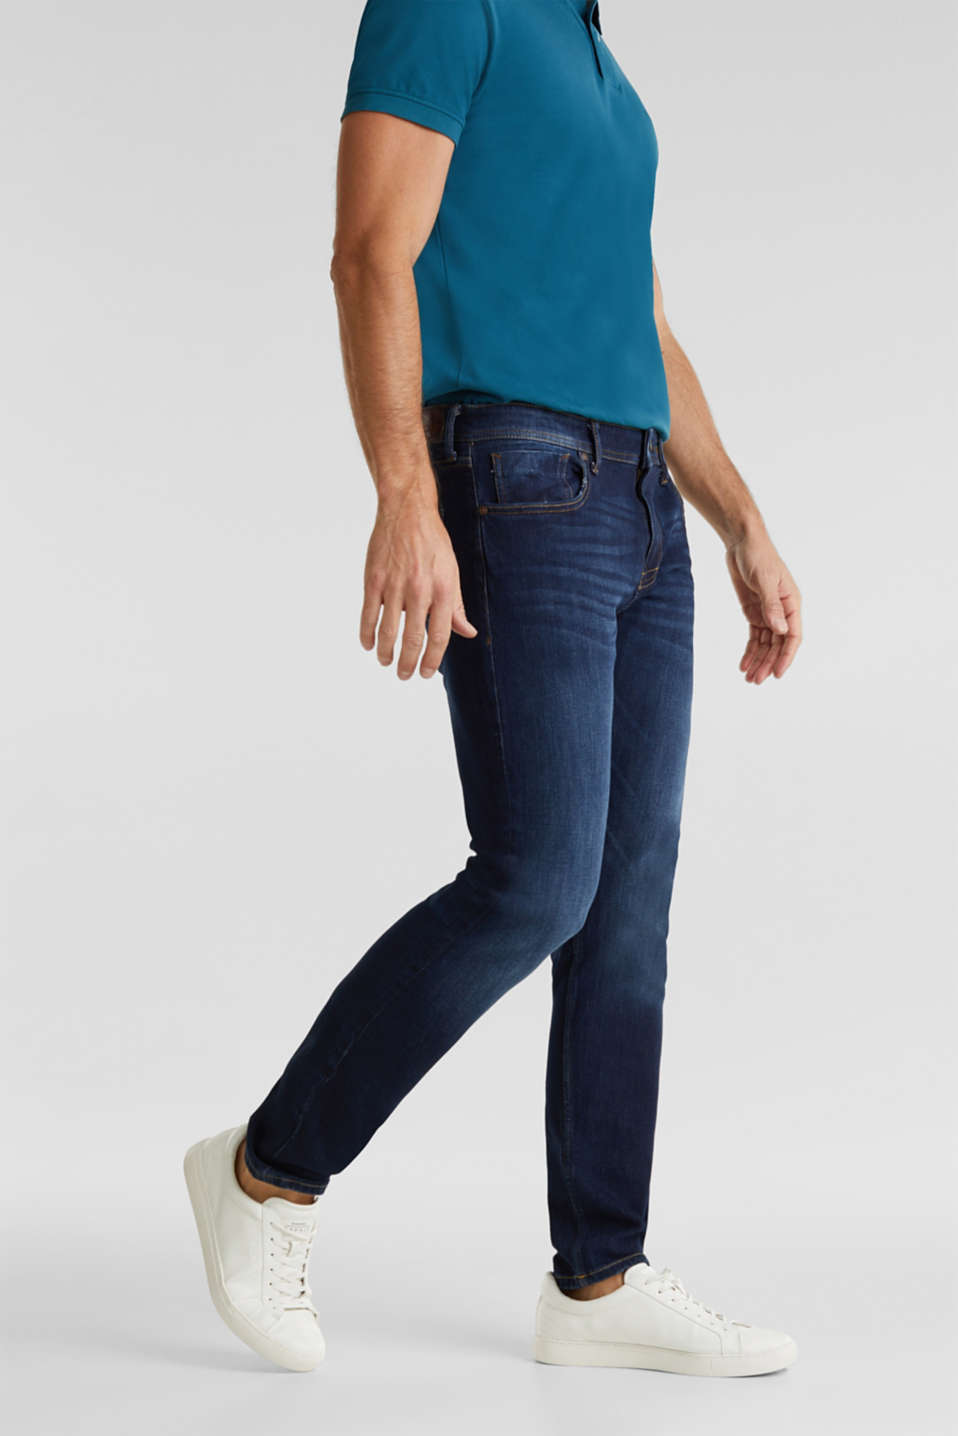 Esprit - Vintage wash two-way stretch jeans